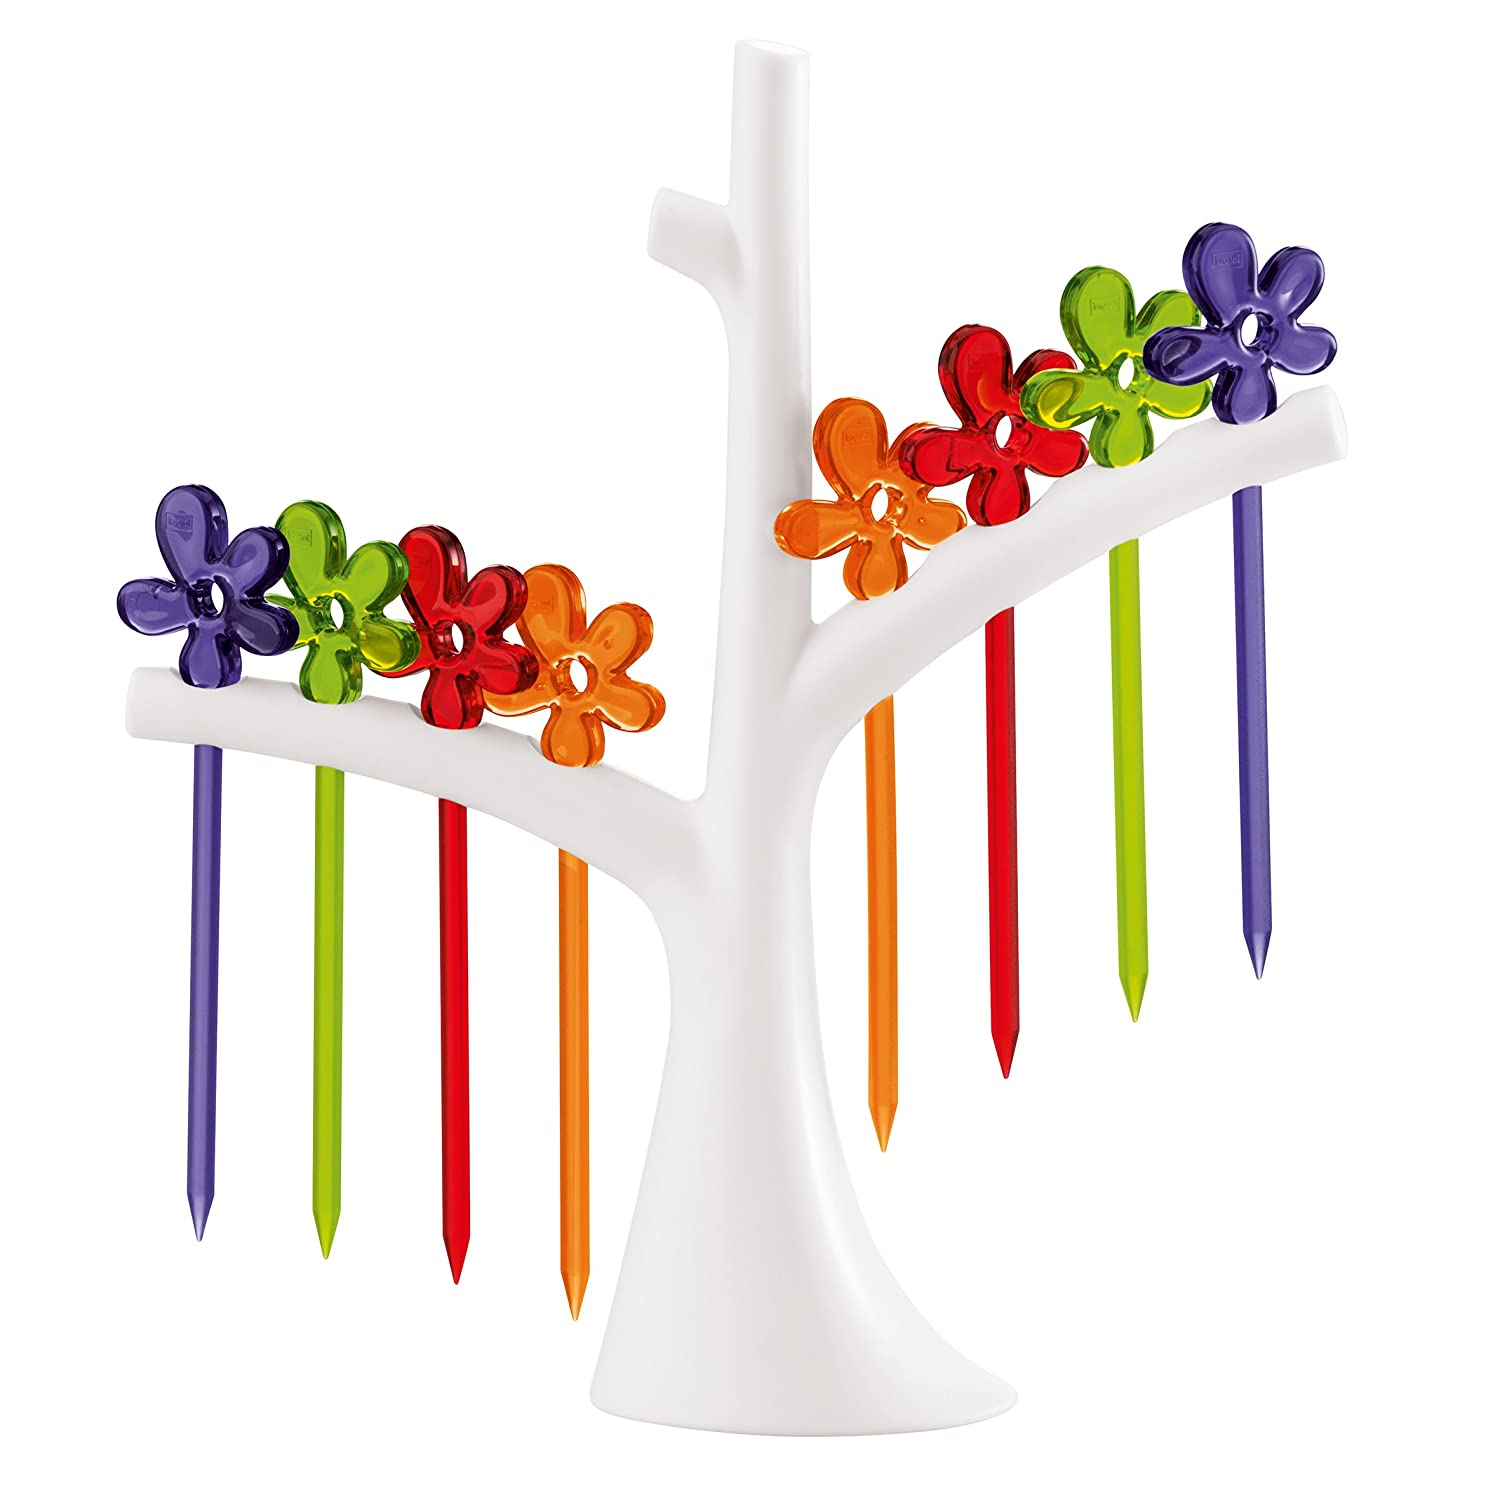 koziol hors d\'oeuvres forks with tree A-Pril, thermoplastic, white ...